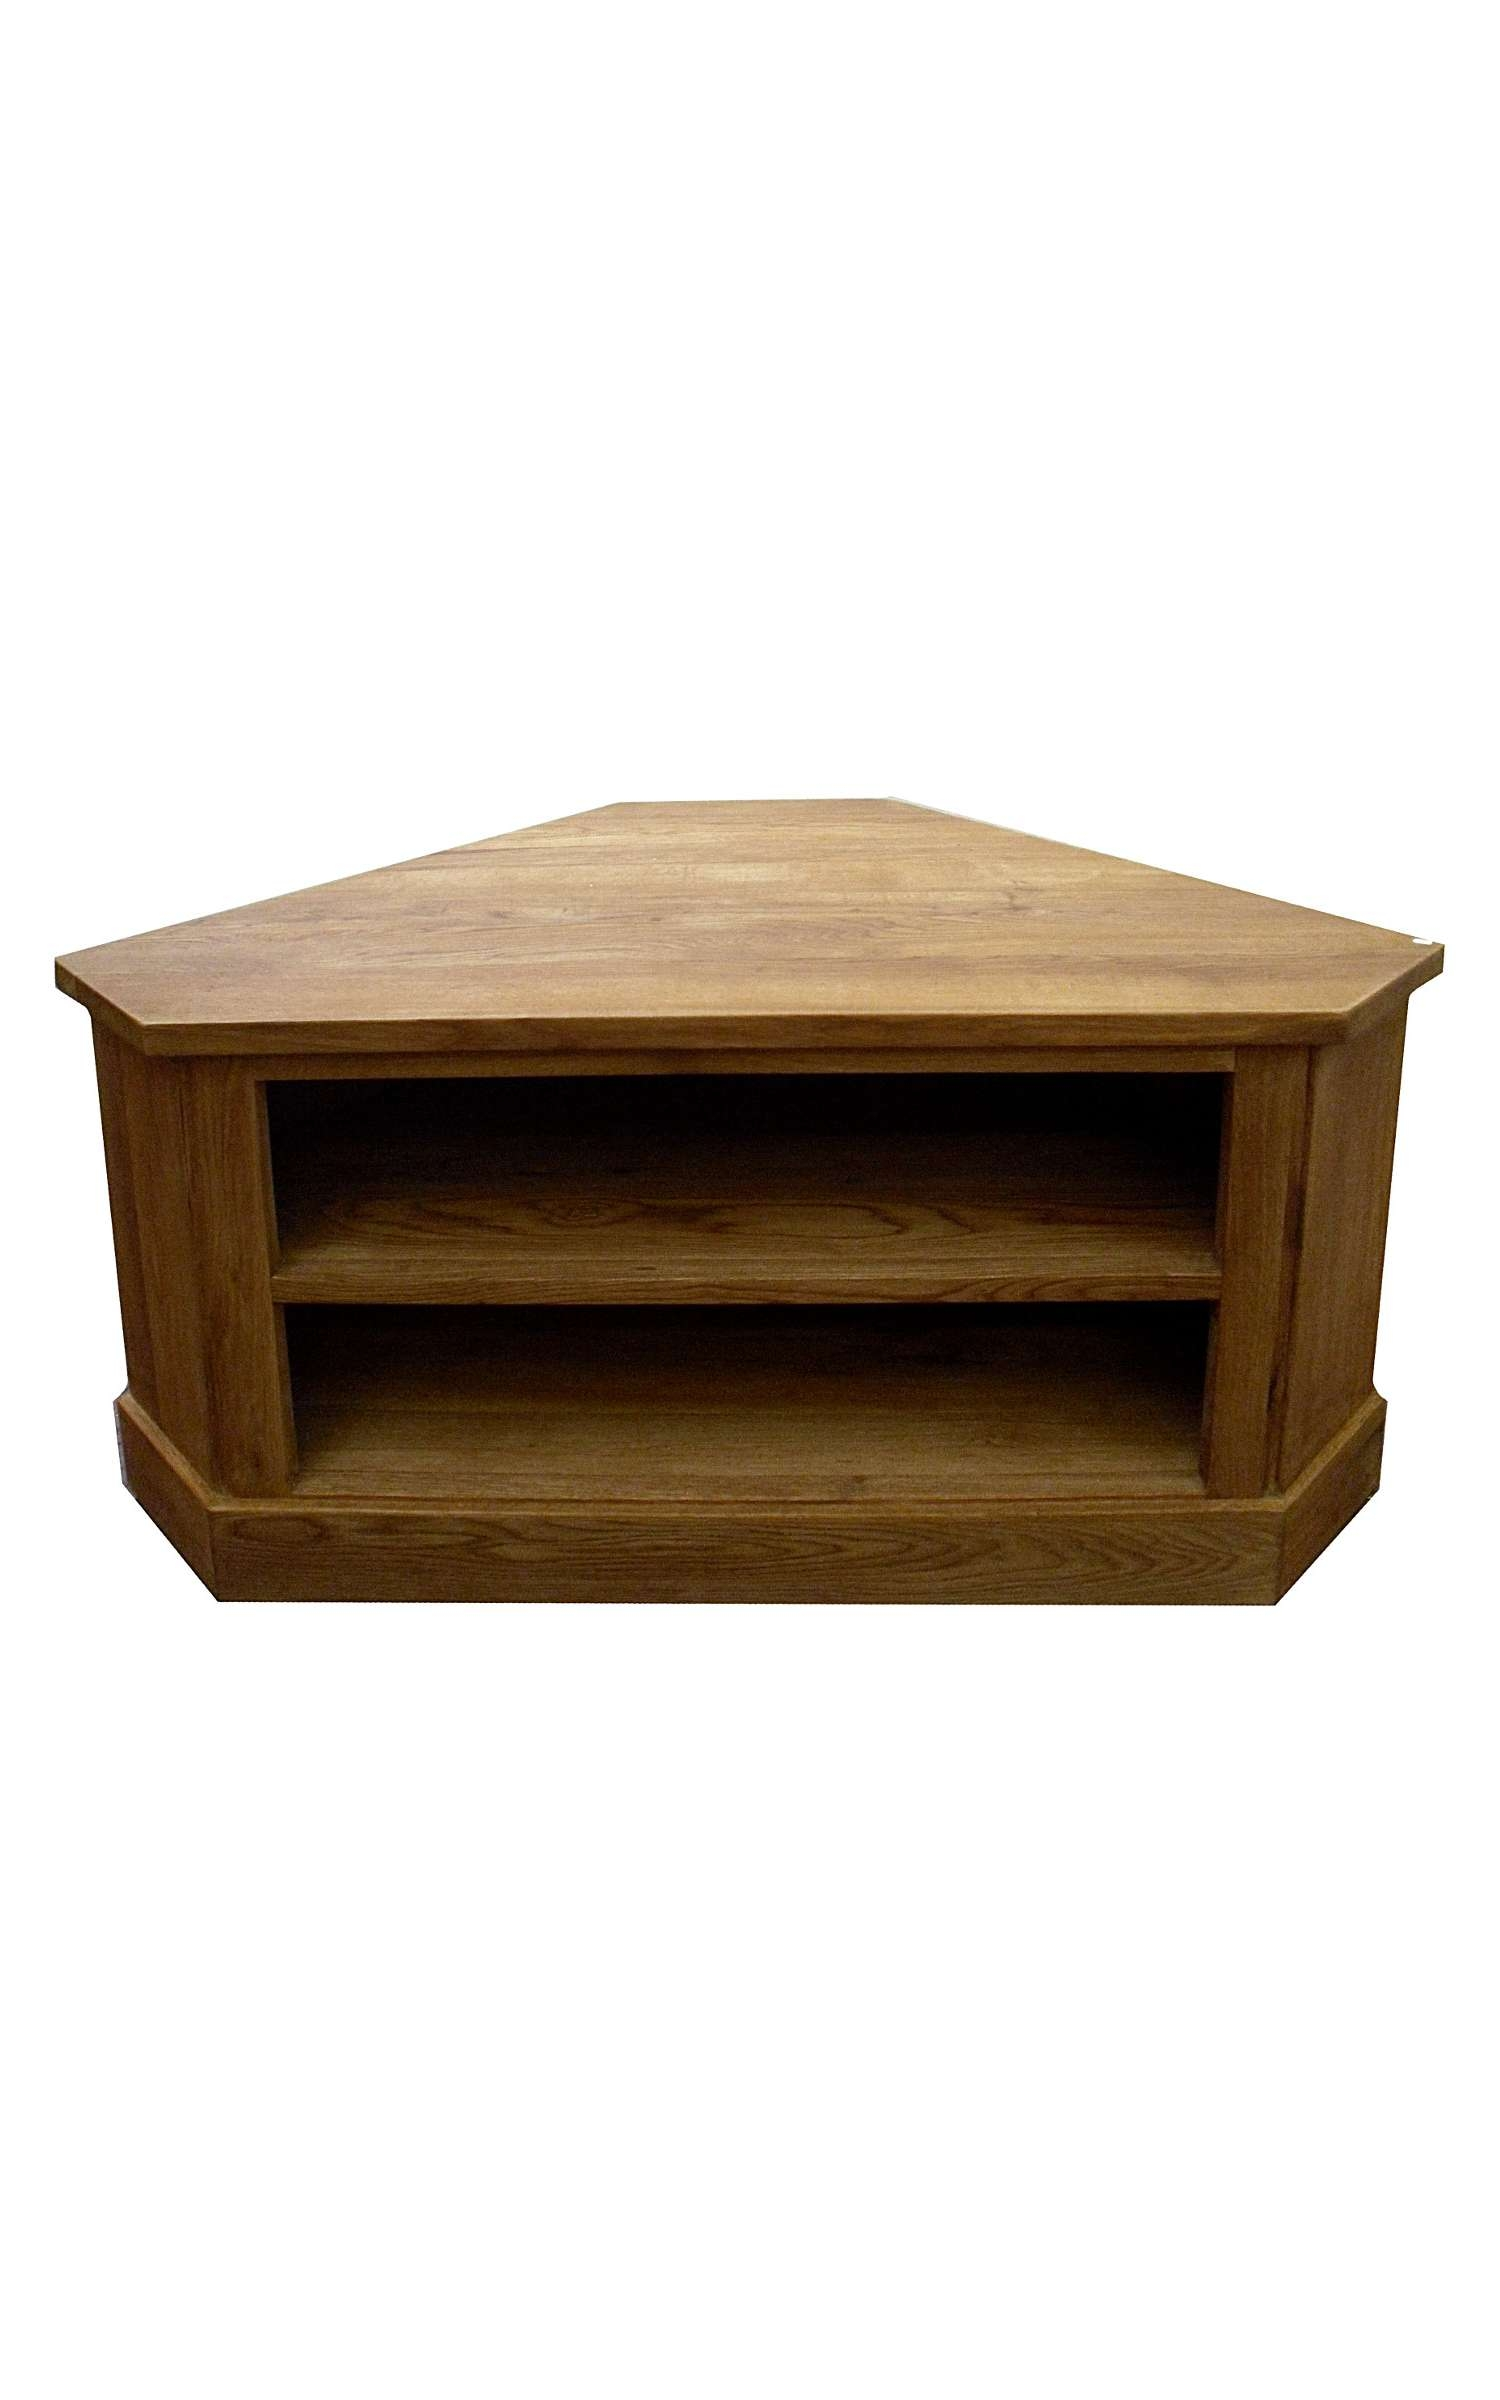 Small Wooden Corner Tv Stand Console Cabinet With Fireplace And Within Wooden Corner Tv Stands (View 6 of 15)